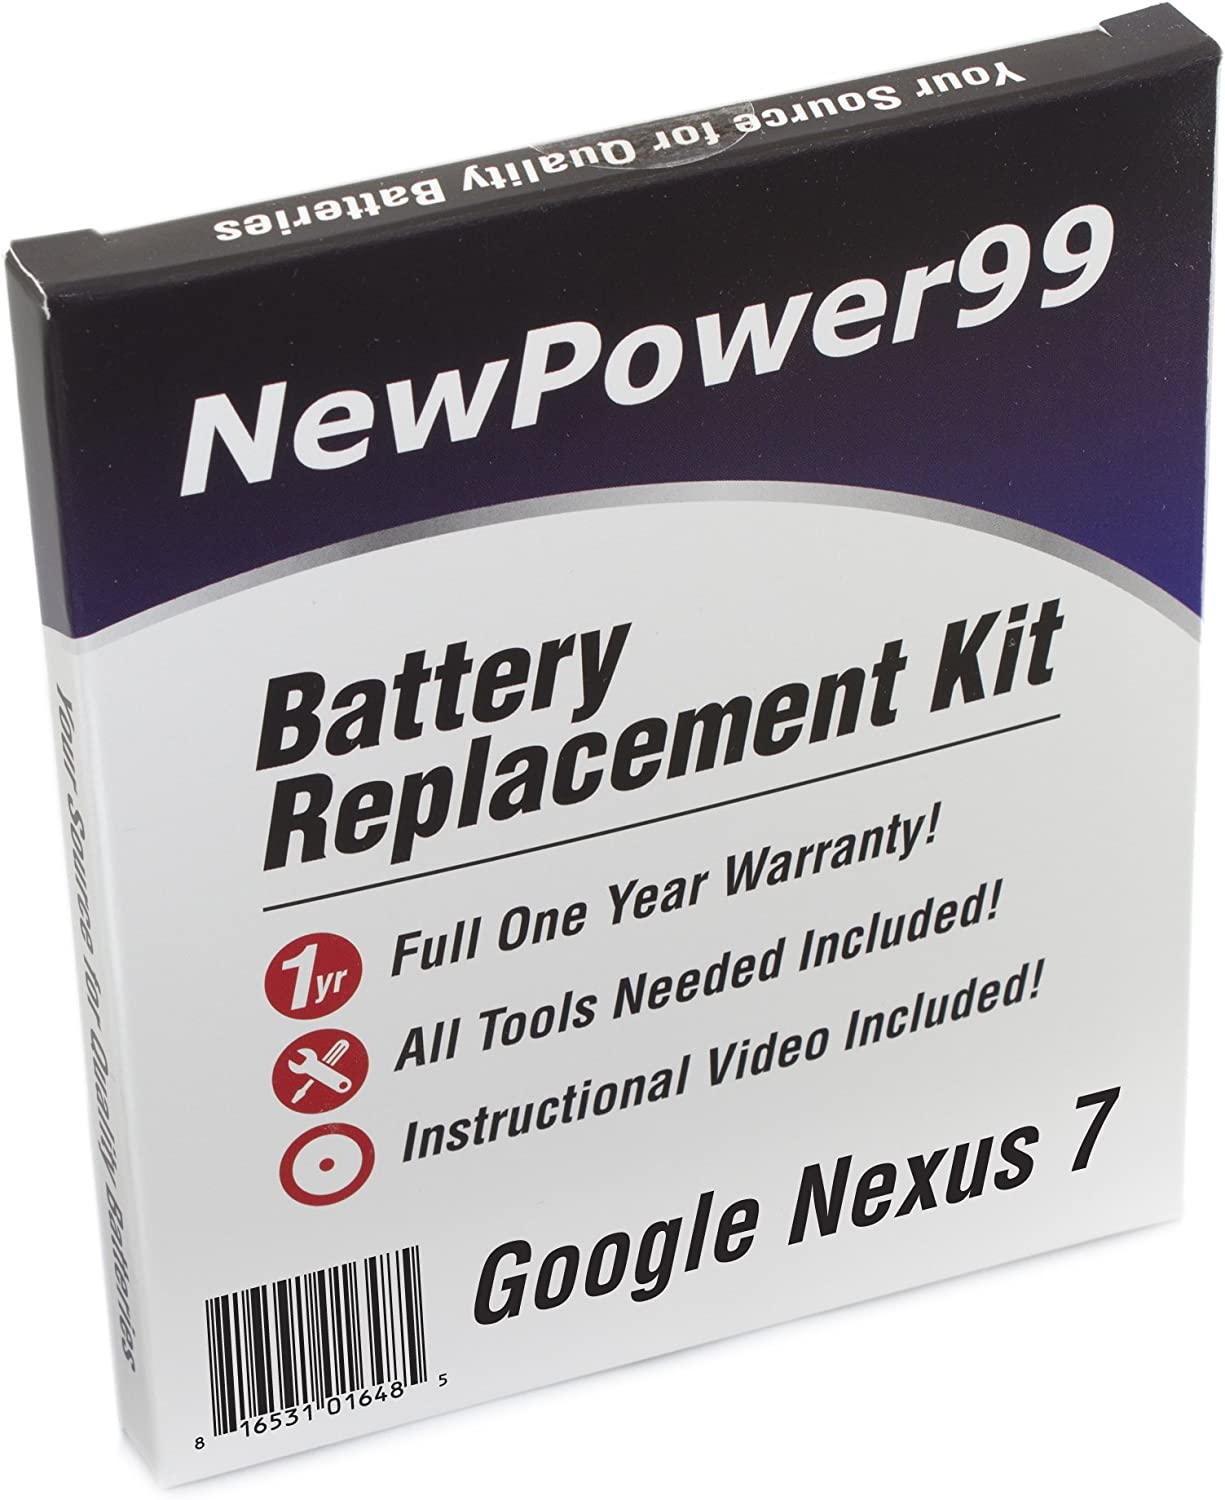 Amazon Com Newpower99 Battery Replacement Kit With Battery Instructions And Tools For Google Nexus 7 Home Audio Theater